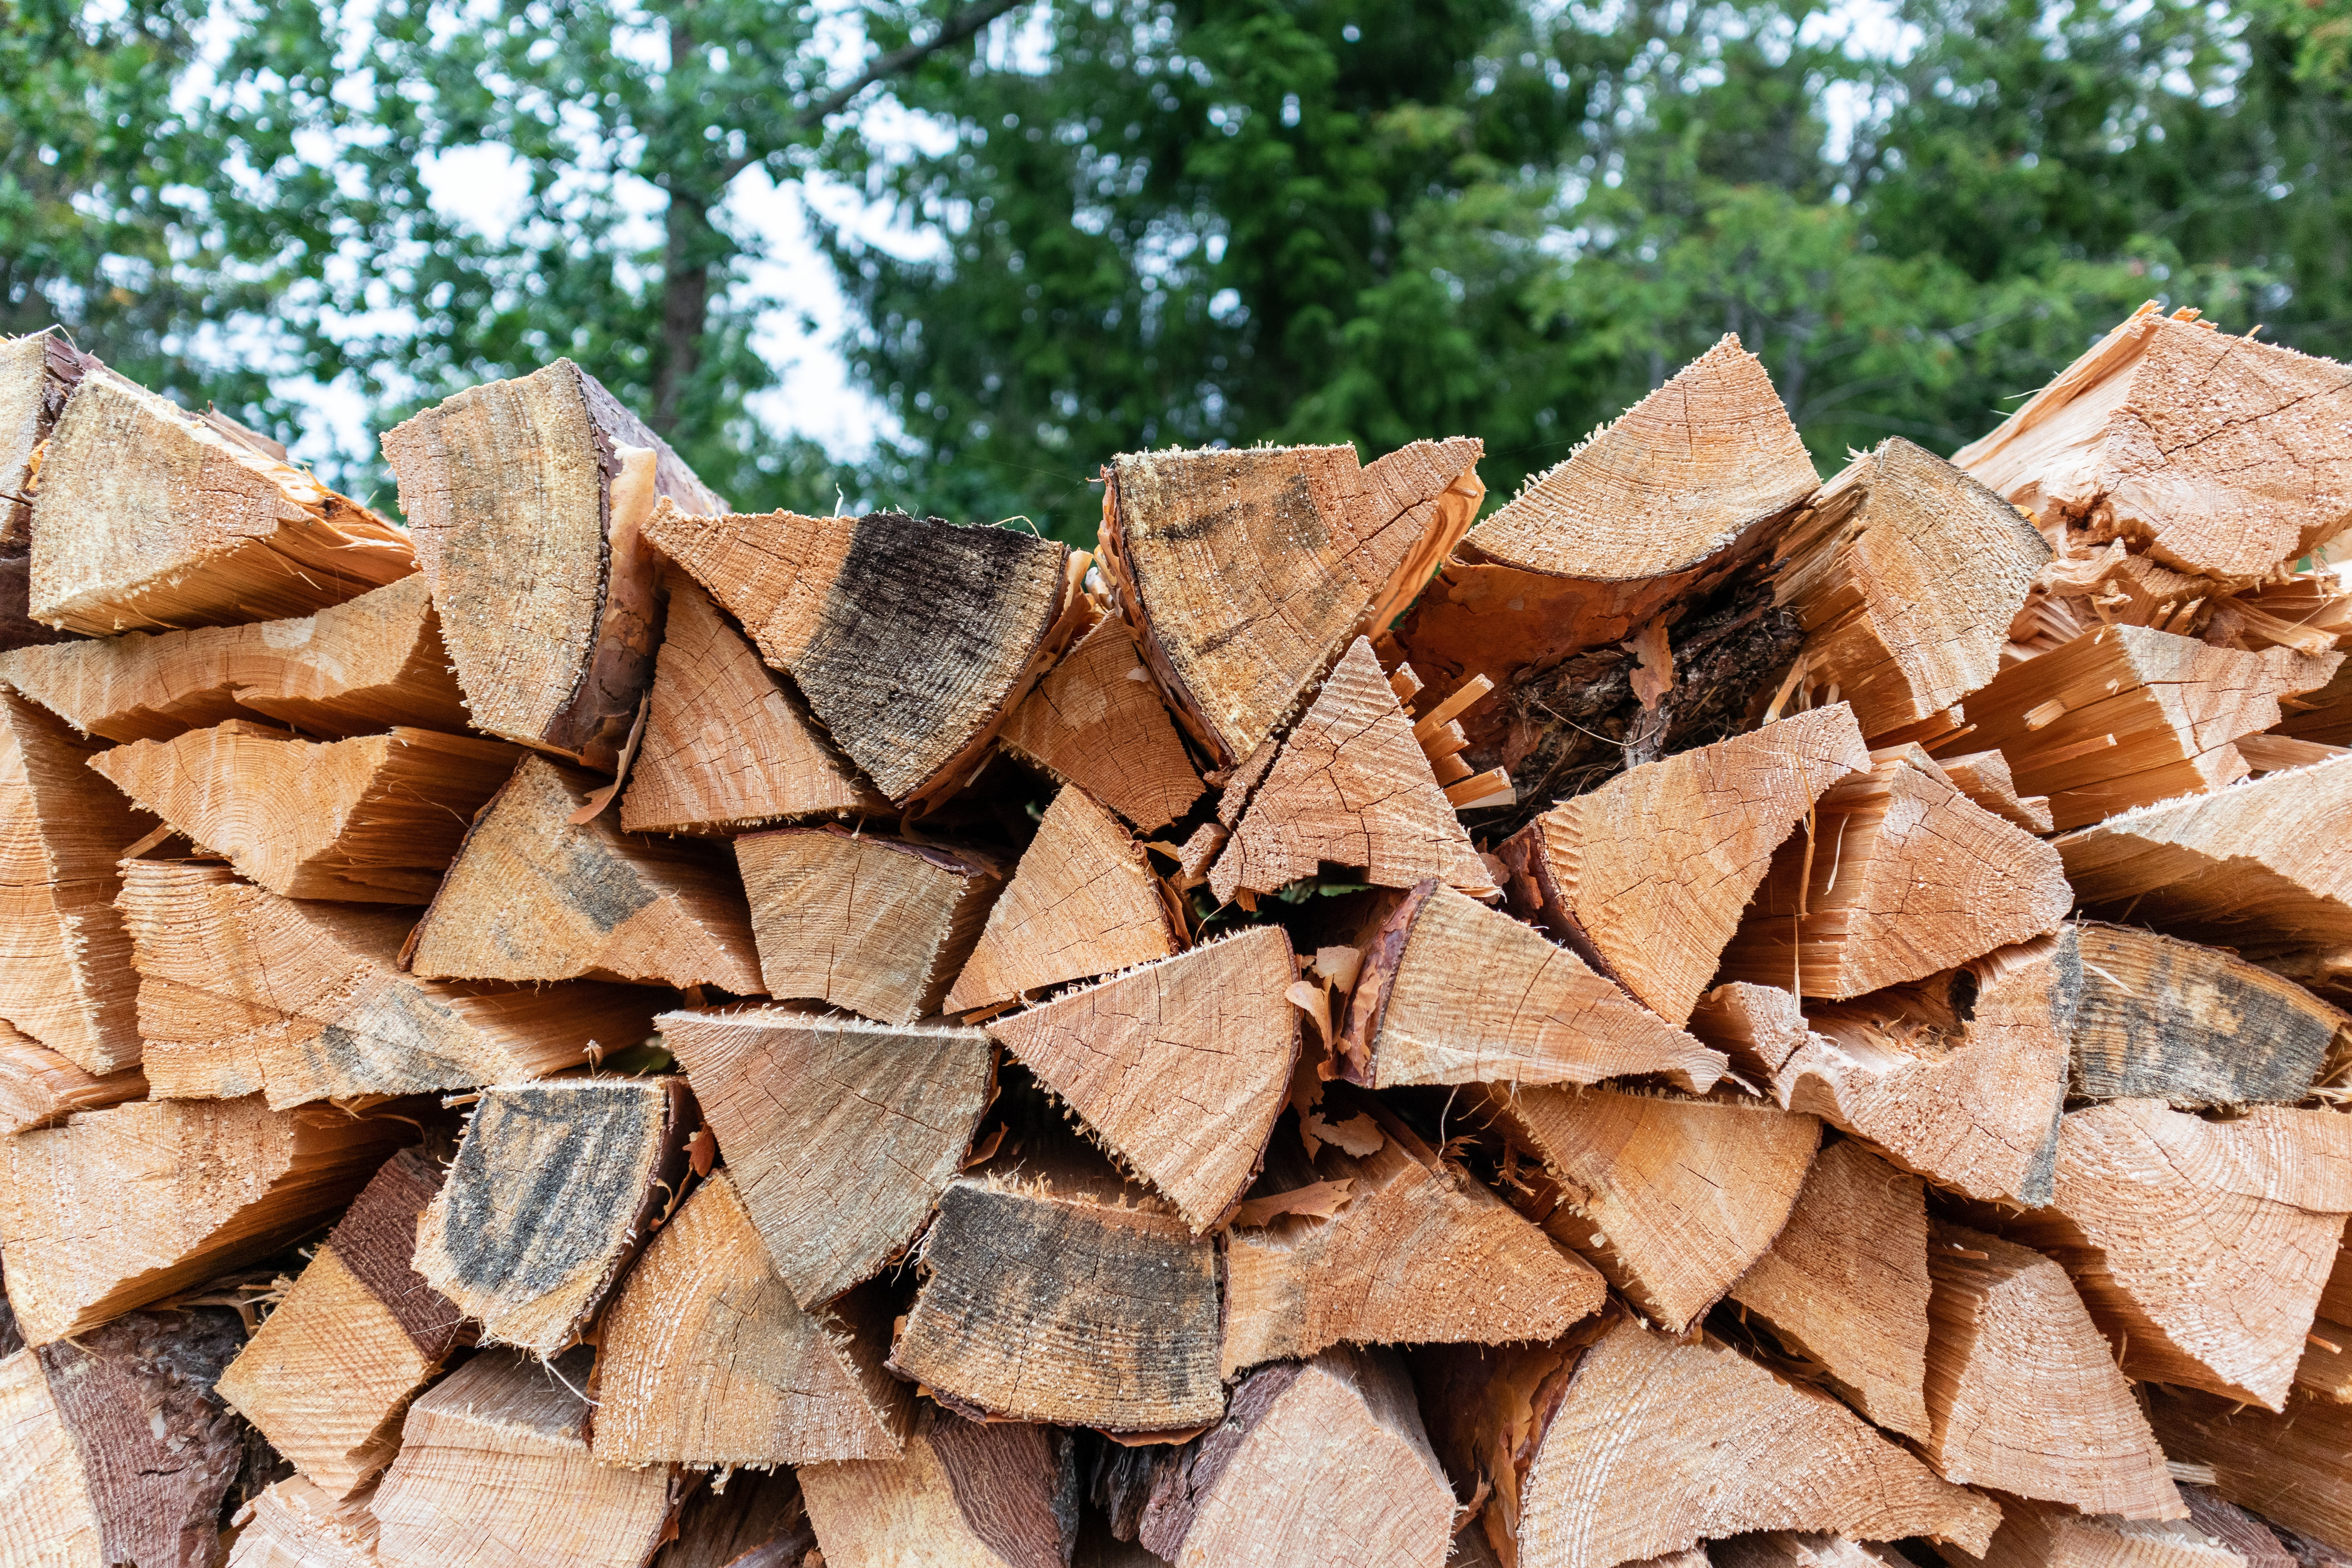 Production of wood for energy in Viljandi county